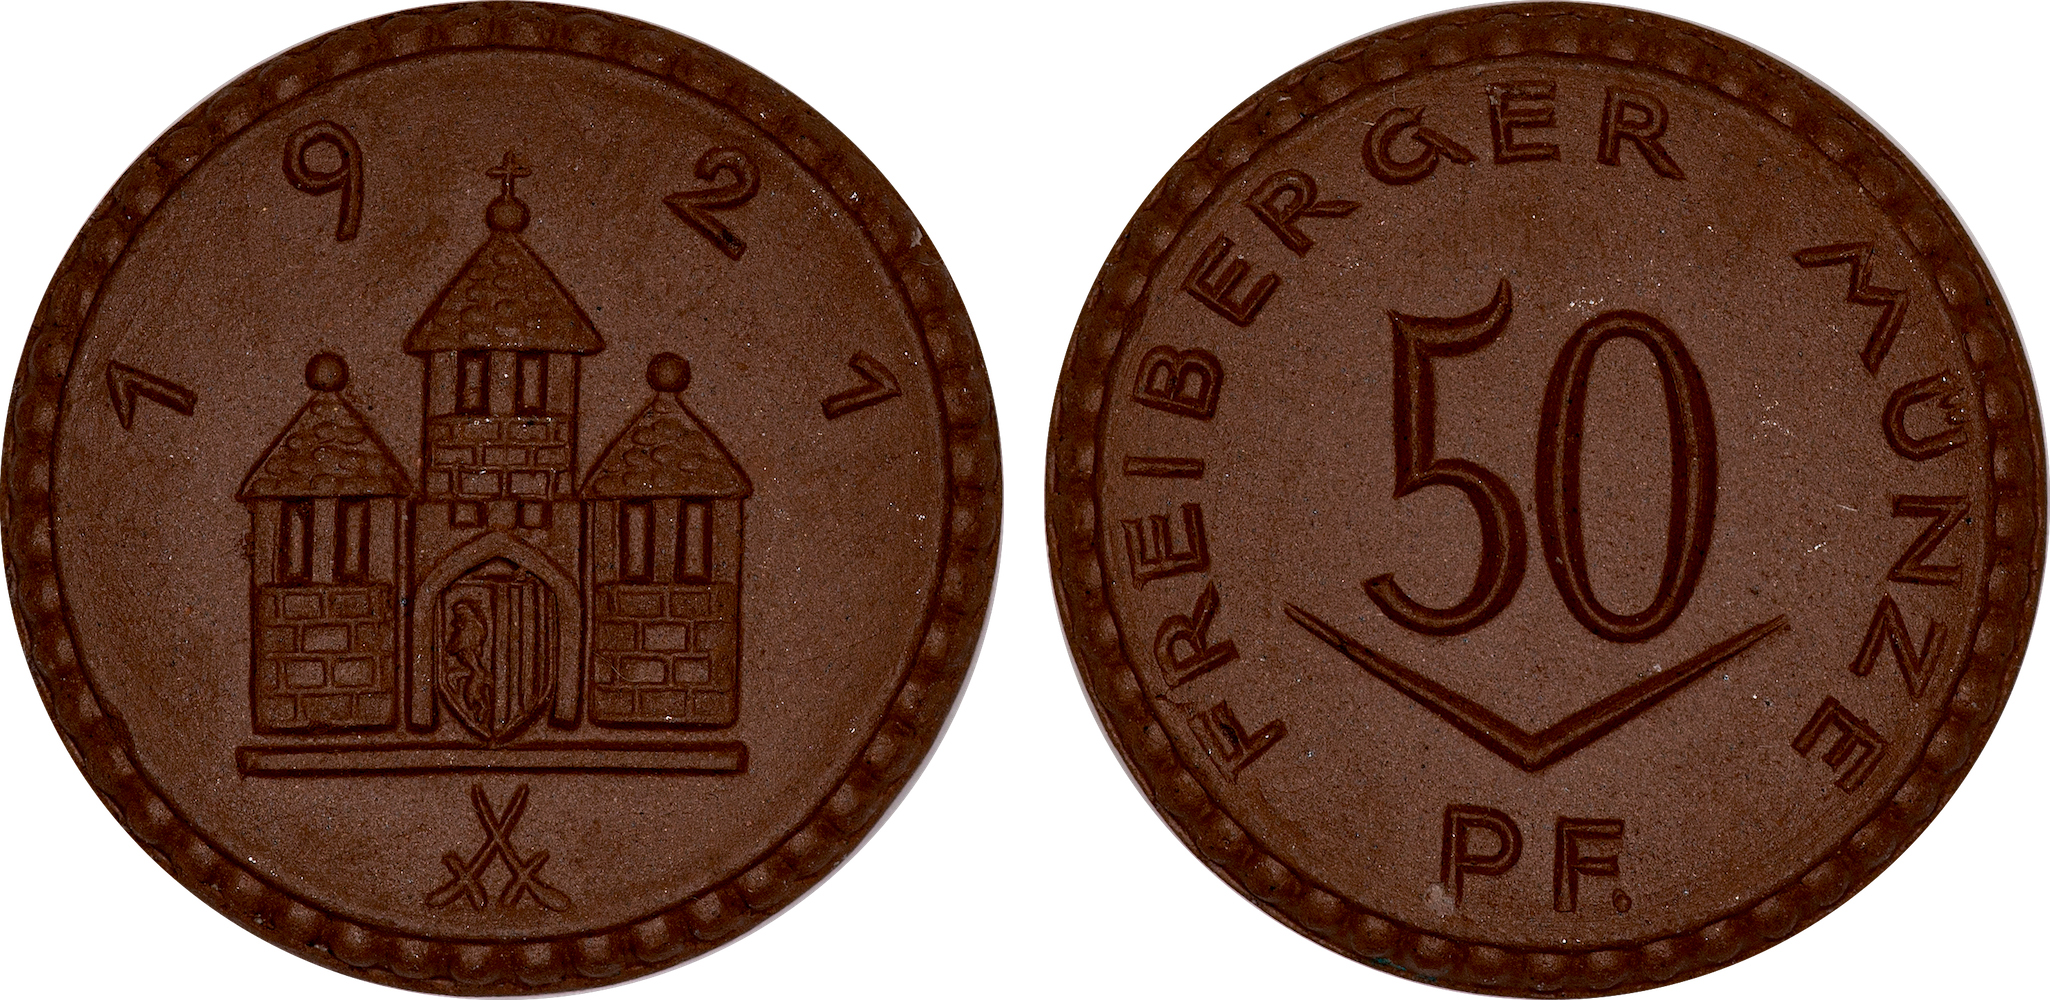 #5  Diameter: 24.5mm / Weight: 3.4g  Germany (Freiberg) - 1921 50 Pfennig